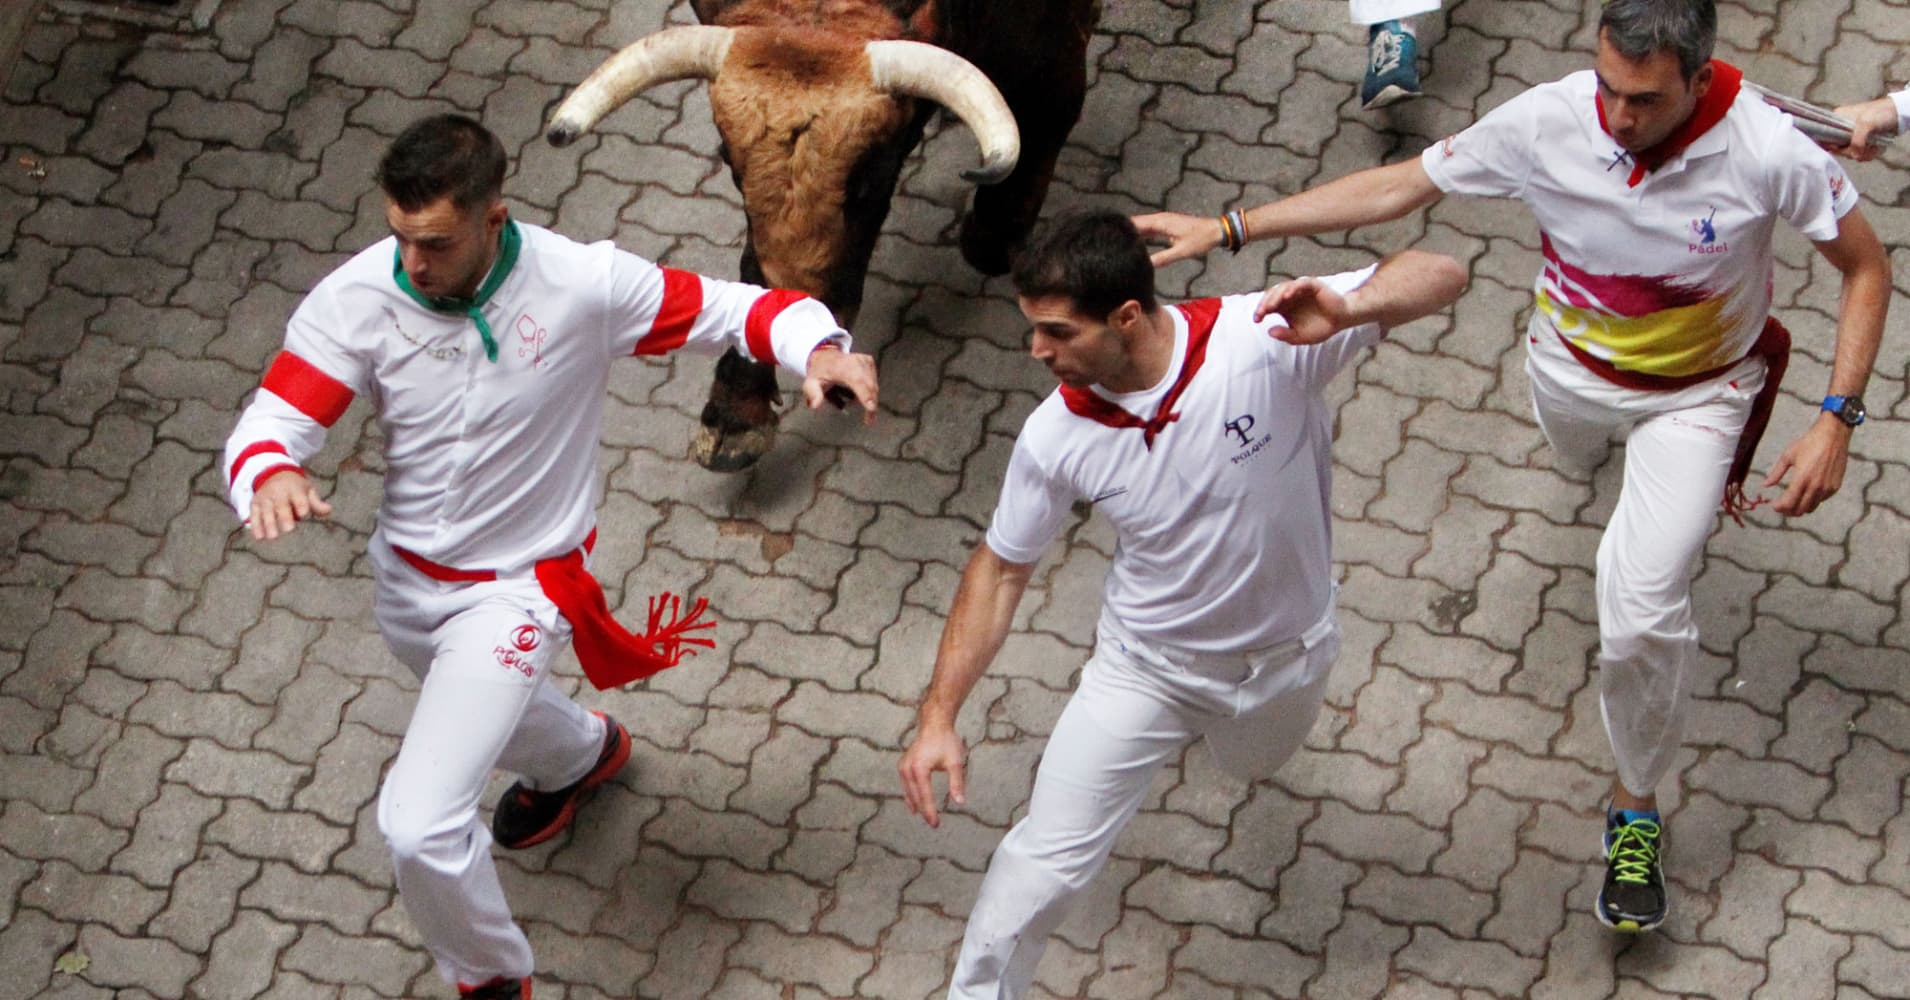 2018's unbridled stock surge may signal the 'overshoot' phase of this bull market is underway